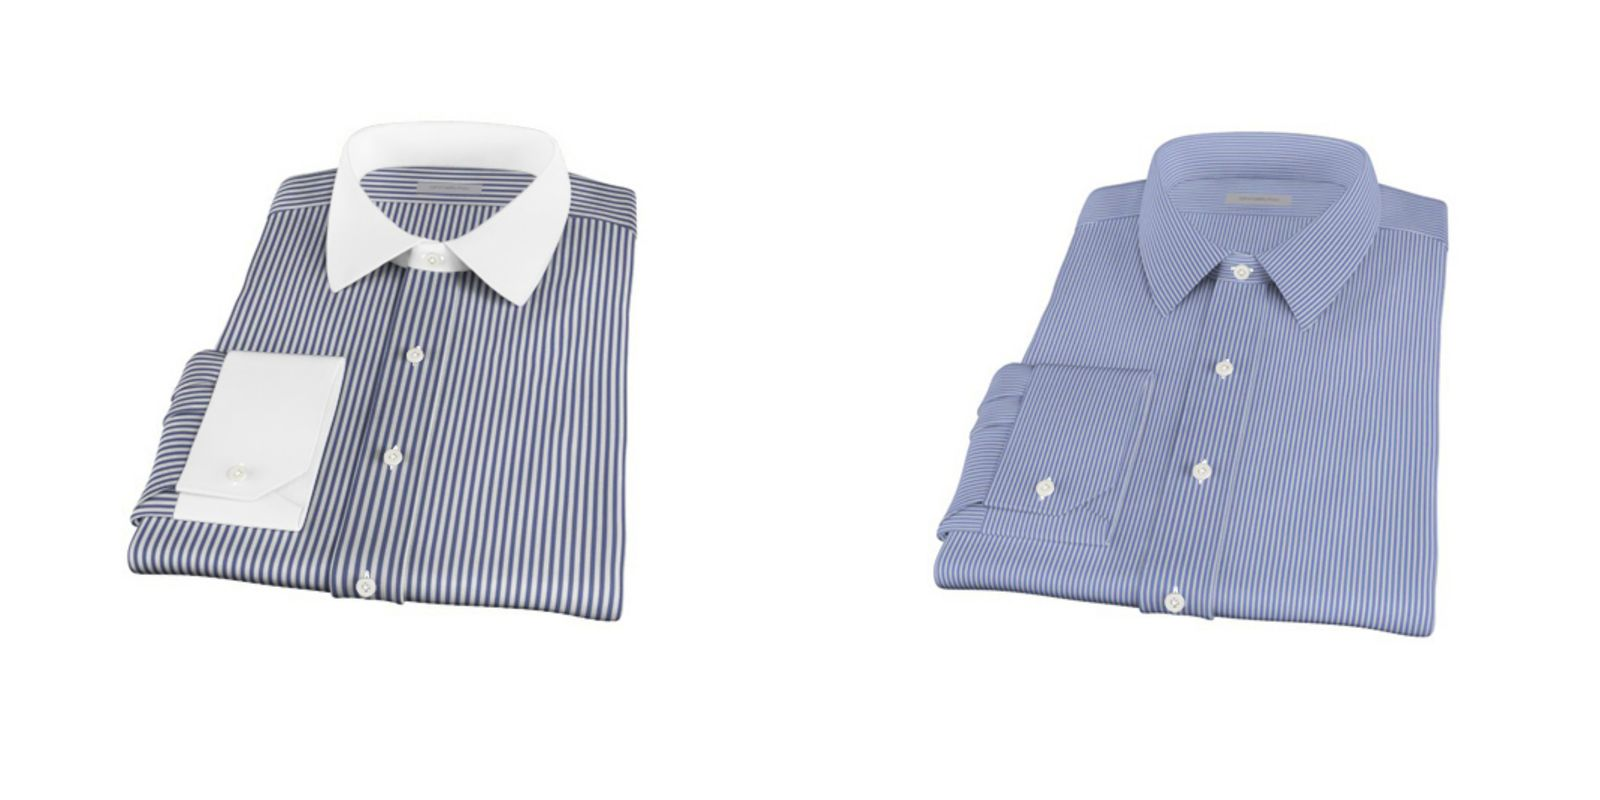 How to order a custom shirt online best shirts 2014 for Order custom shirts online